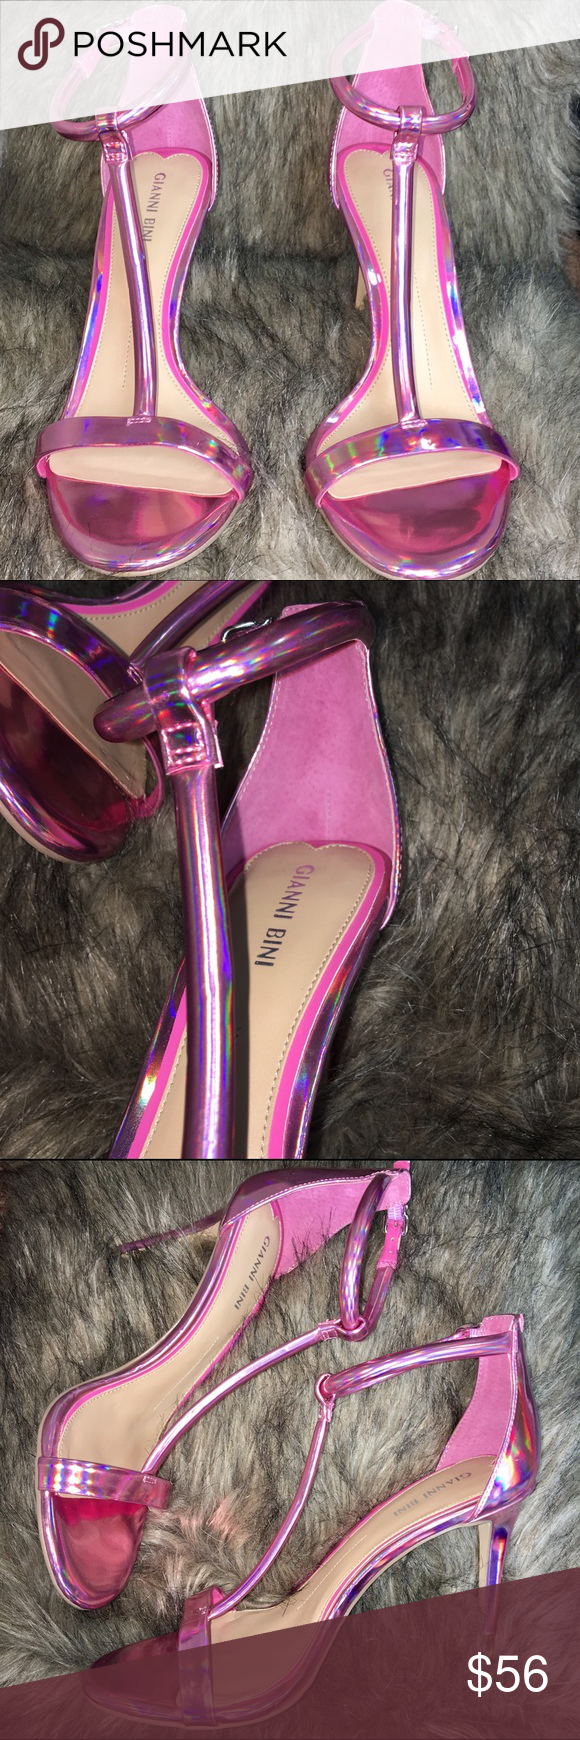 151923c0e1c Pink Holographic/ Holo Gianni Bini Heels ABSOLUTELY GORGEOUS HEELS ...